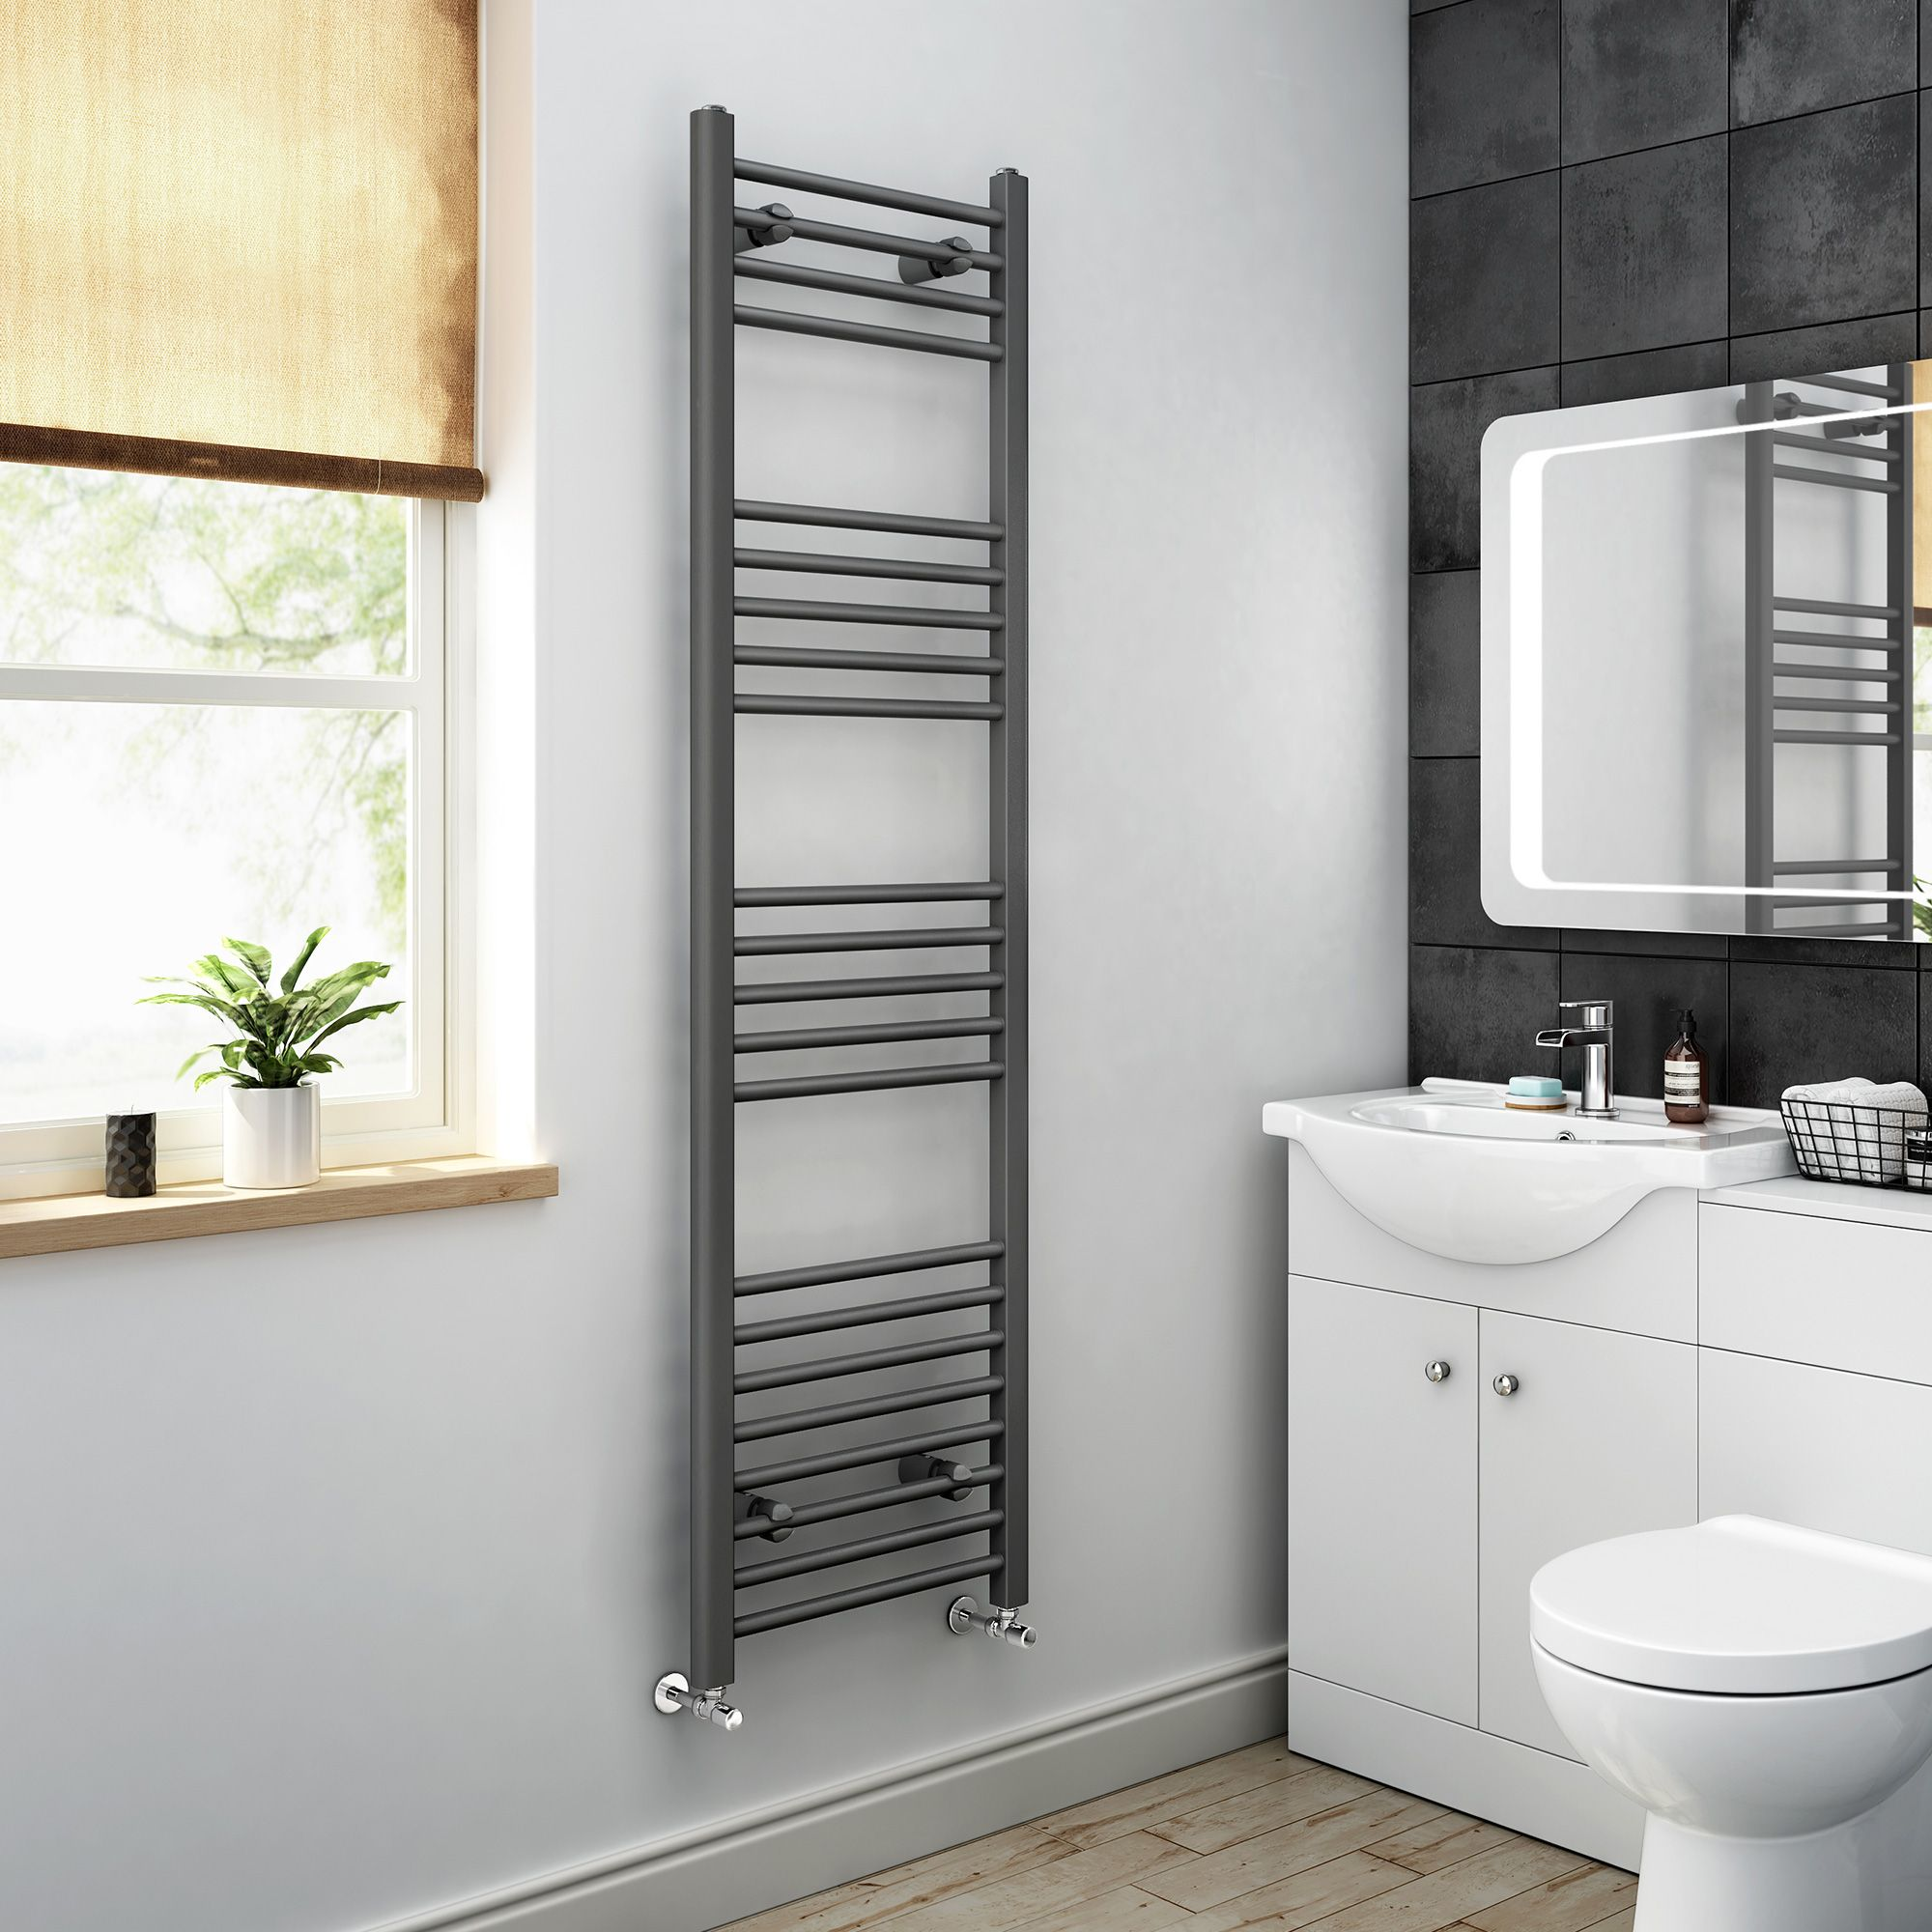 1600x450mm Anthracite Heated Straight Rail Ladder Towel Radiator